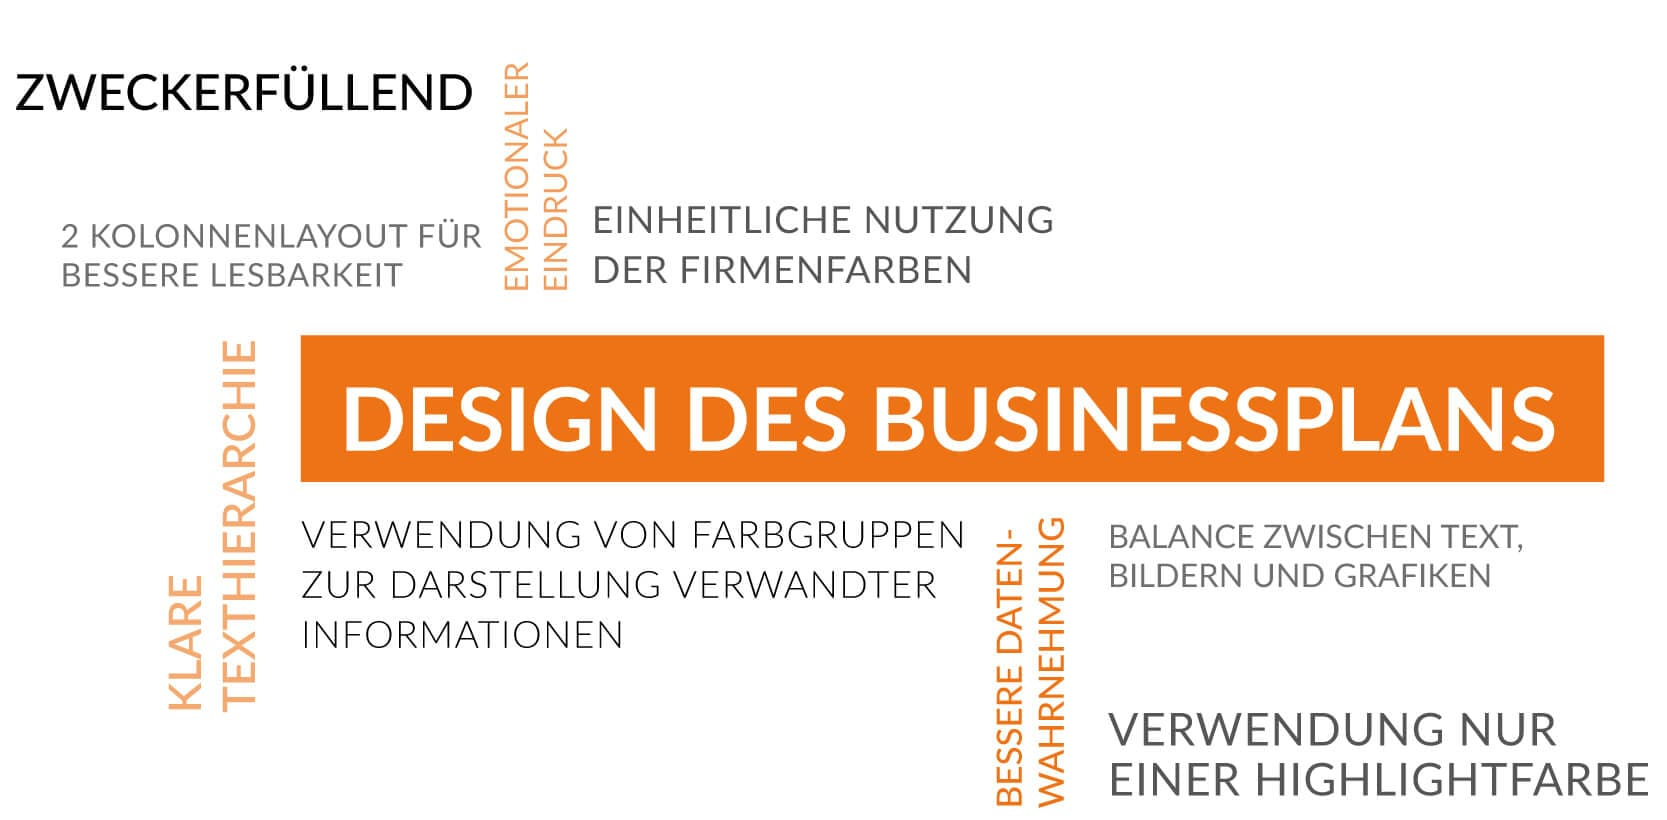 Design des business plans